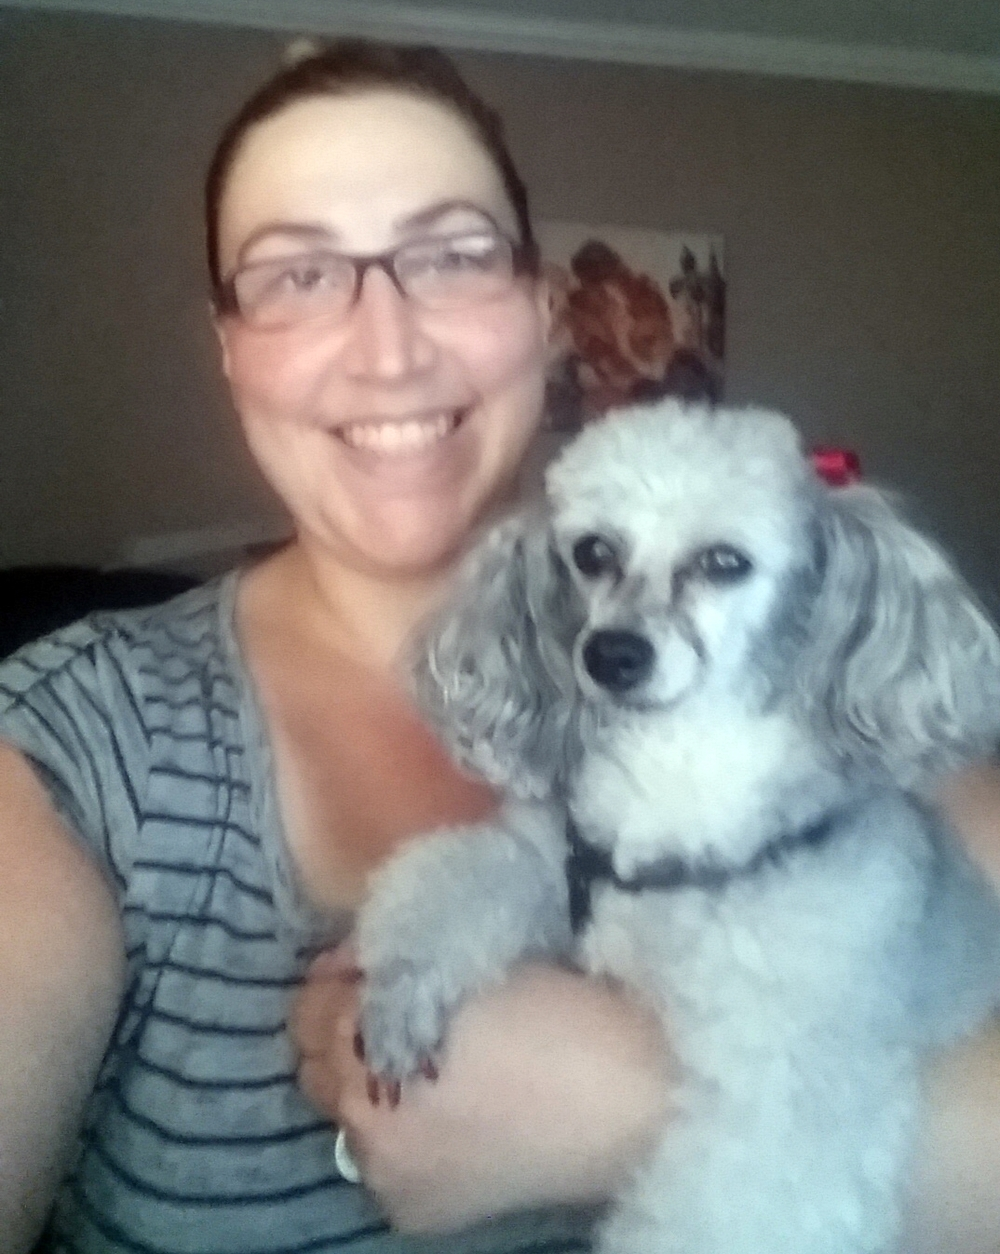 Here is Angela with one of her mother's poodle, Bella Note.